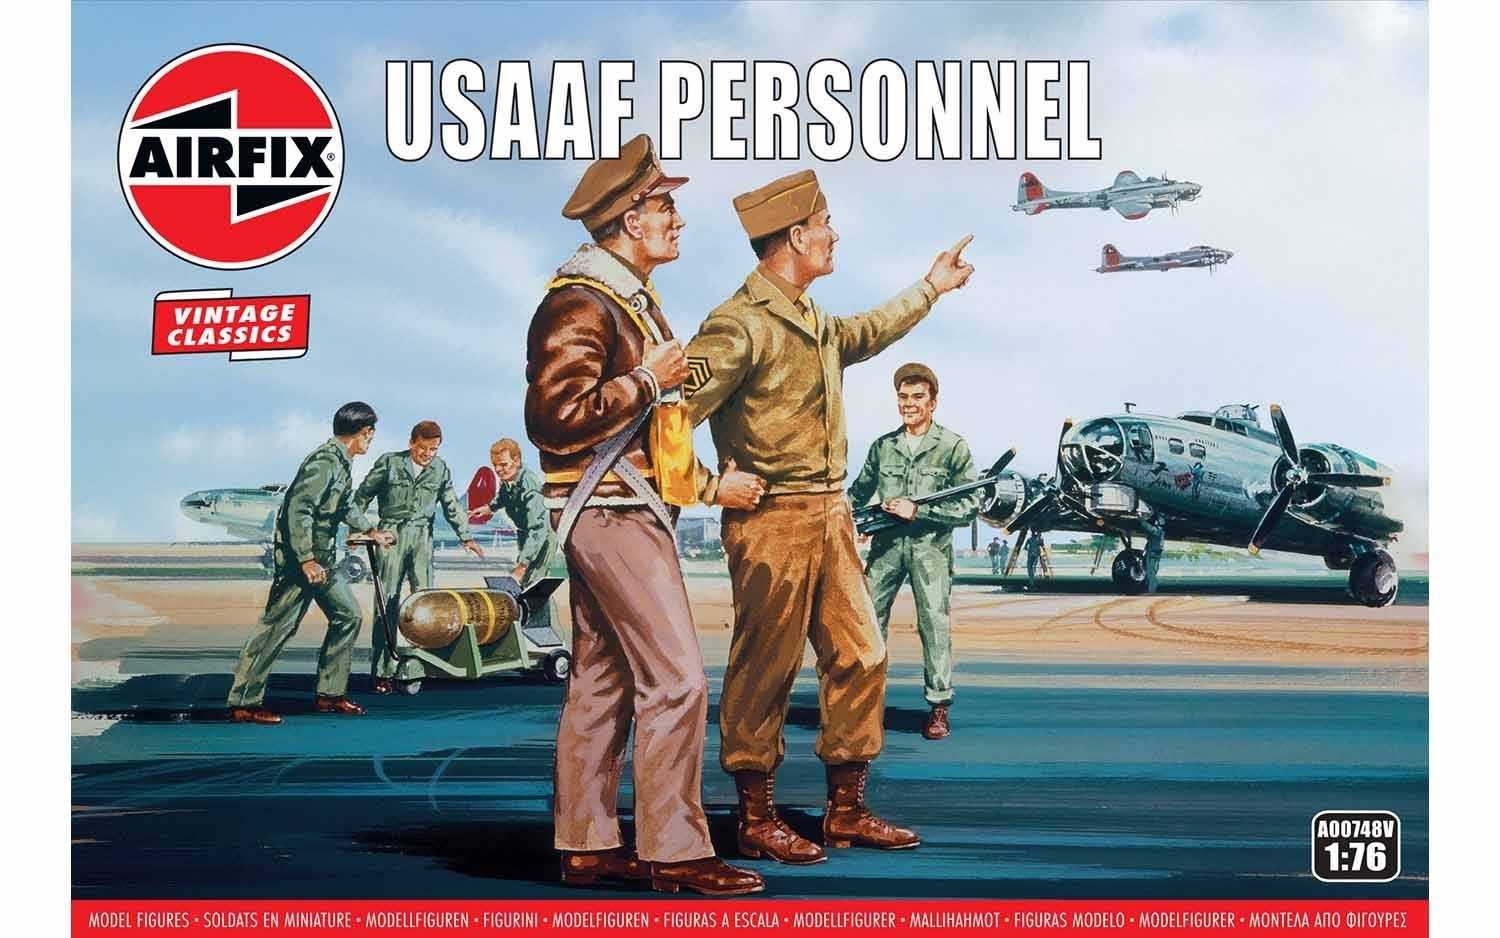 1:76 USAAF Personnel (Classic Kit VINTAGE Military)